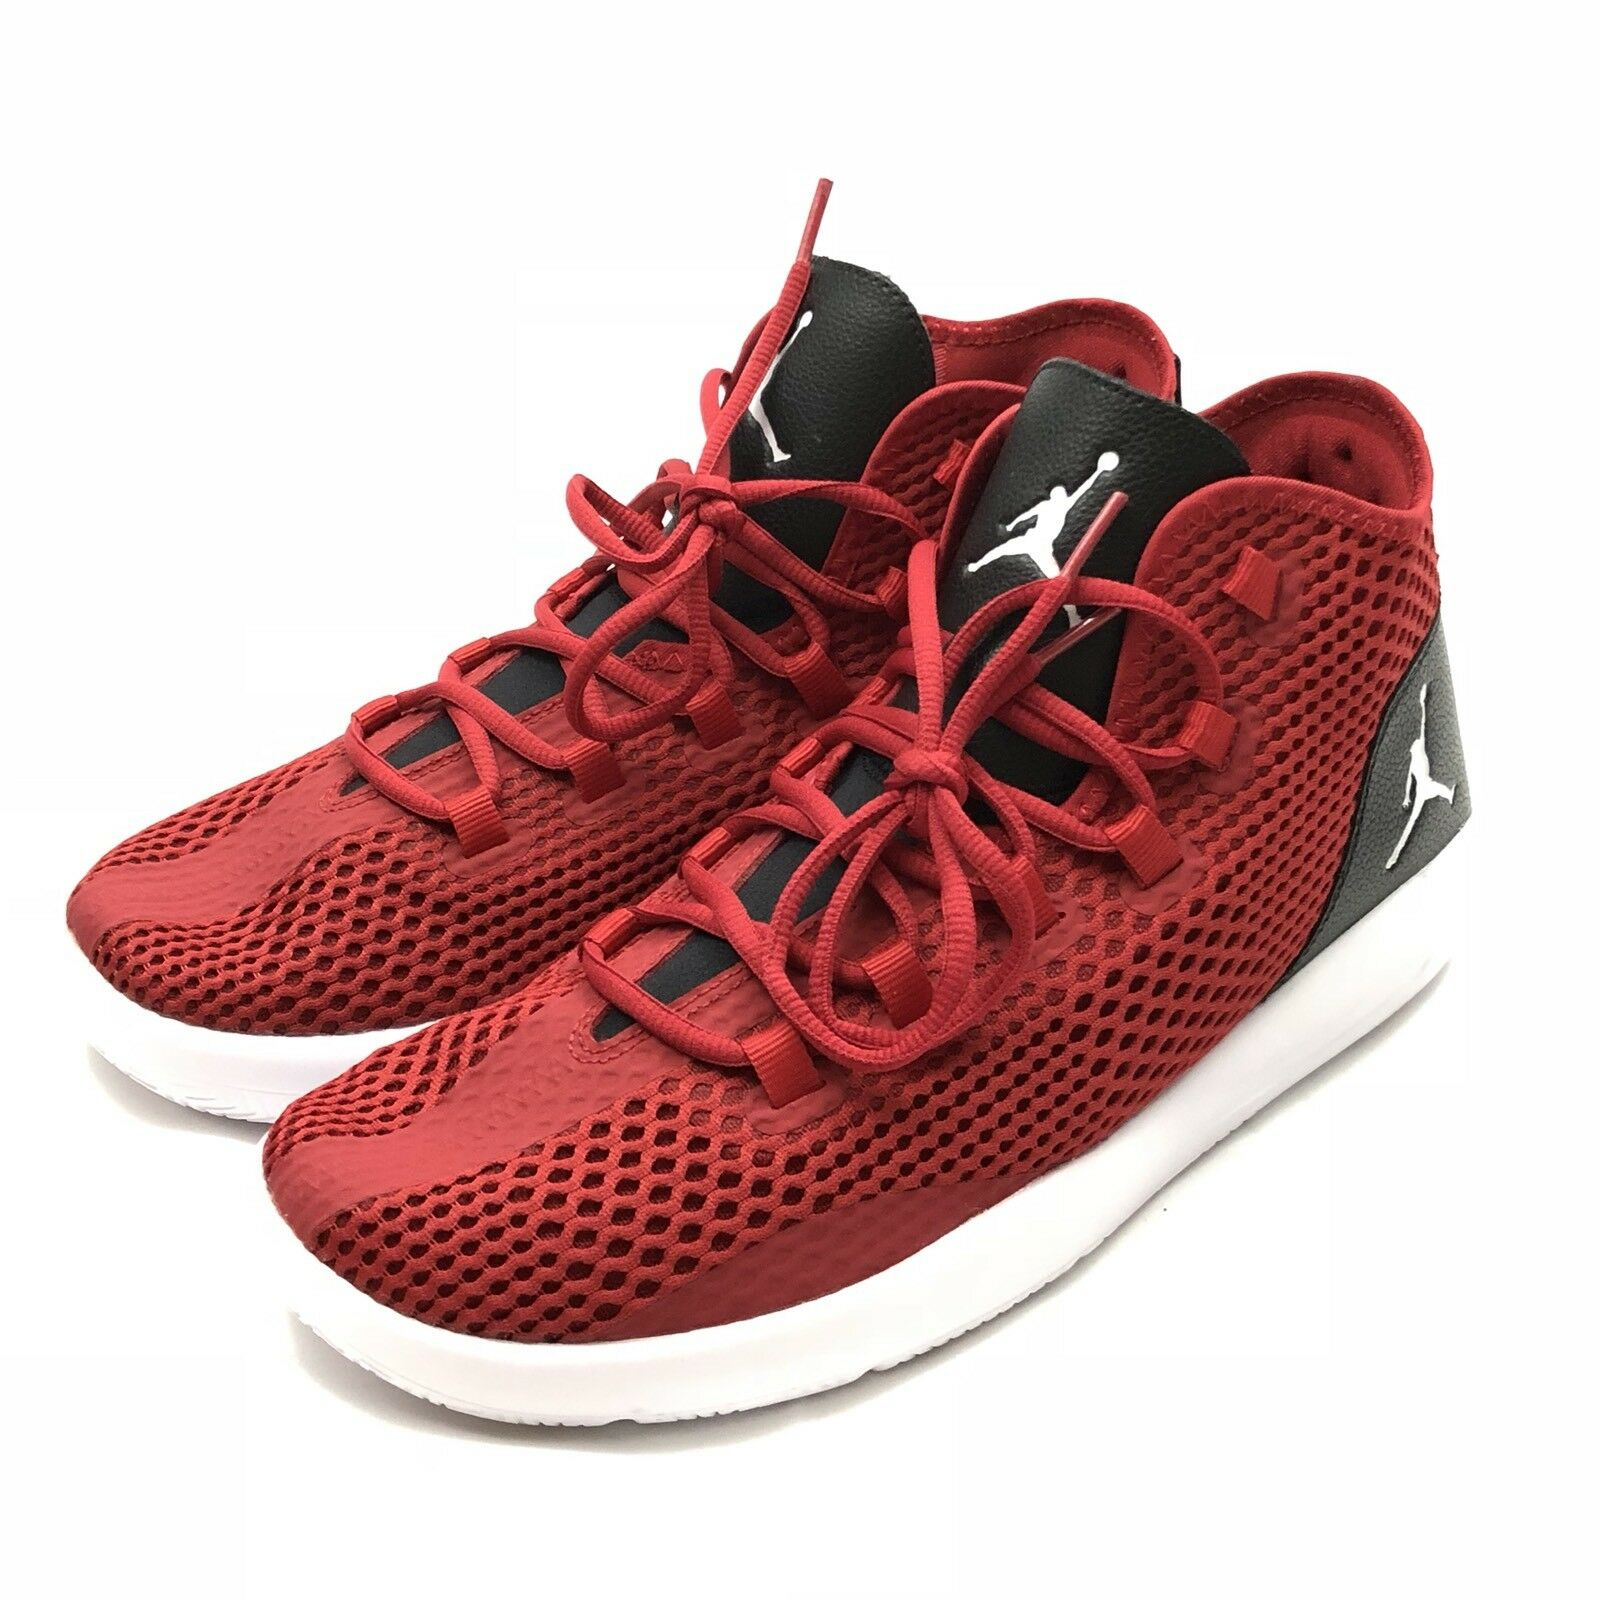 Nike Men's Red and Black Jordan Reveal Comfortable Special limited time